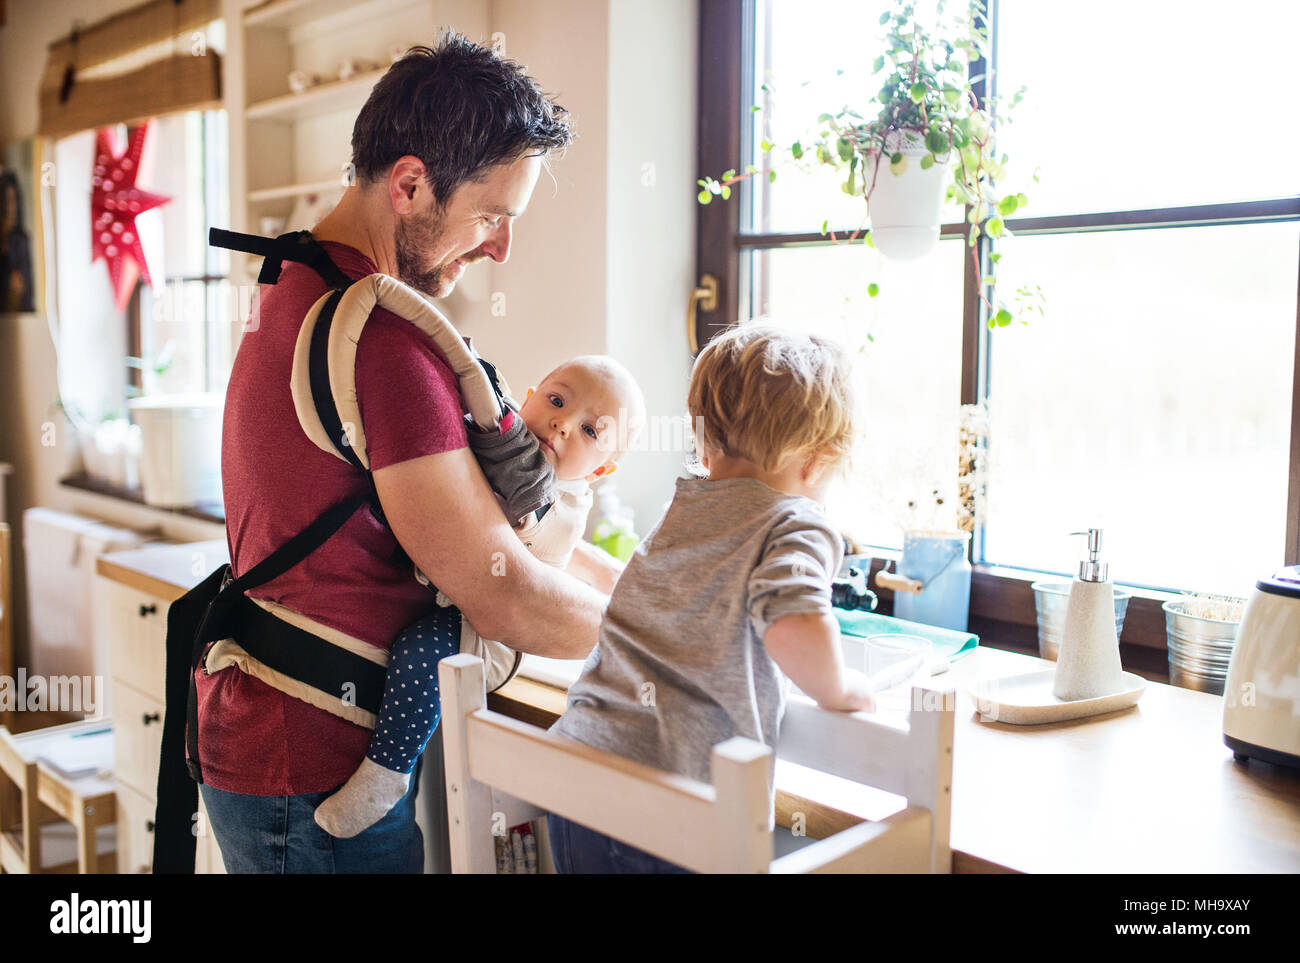 Father and two toddlers washing up the dishes. - Stock Image